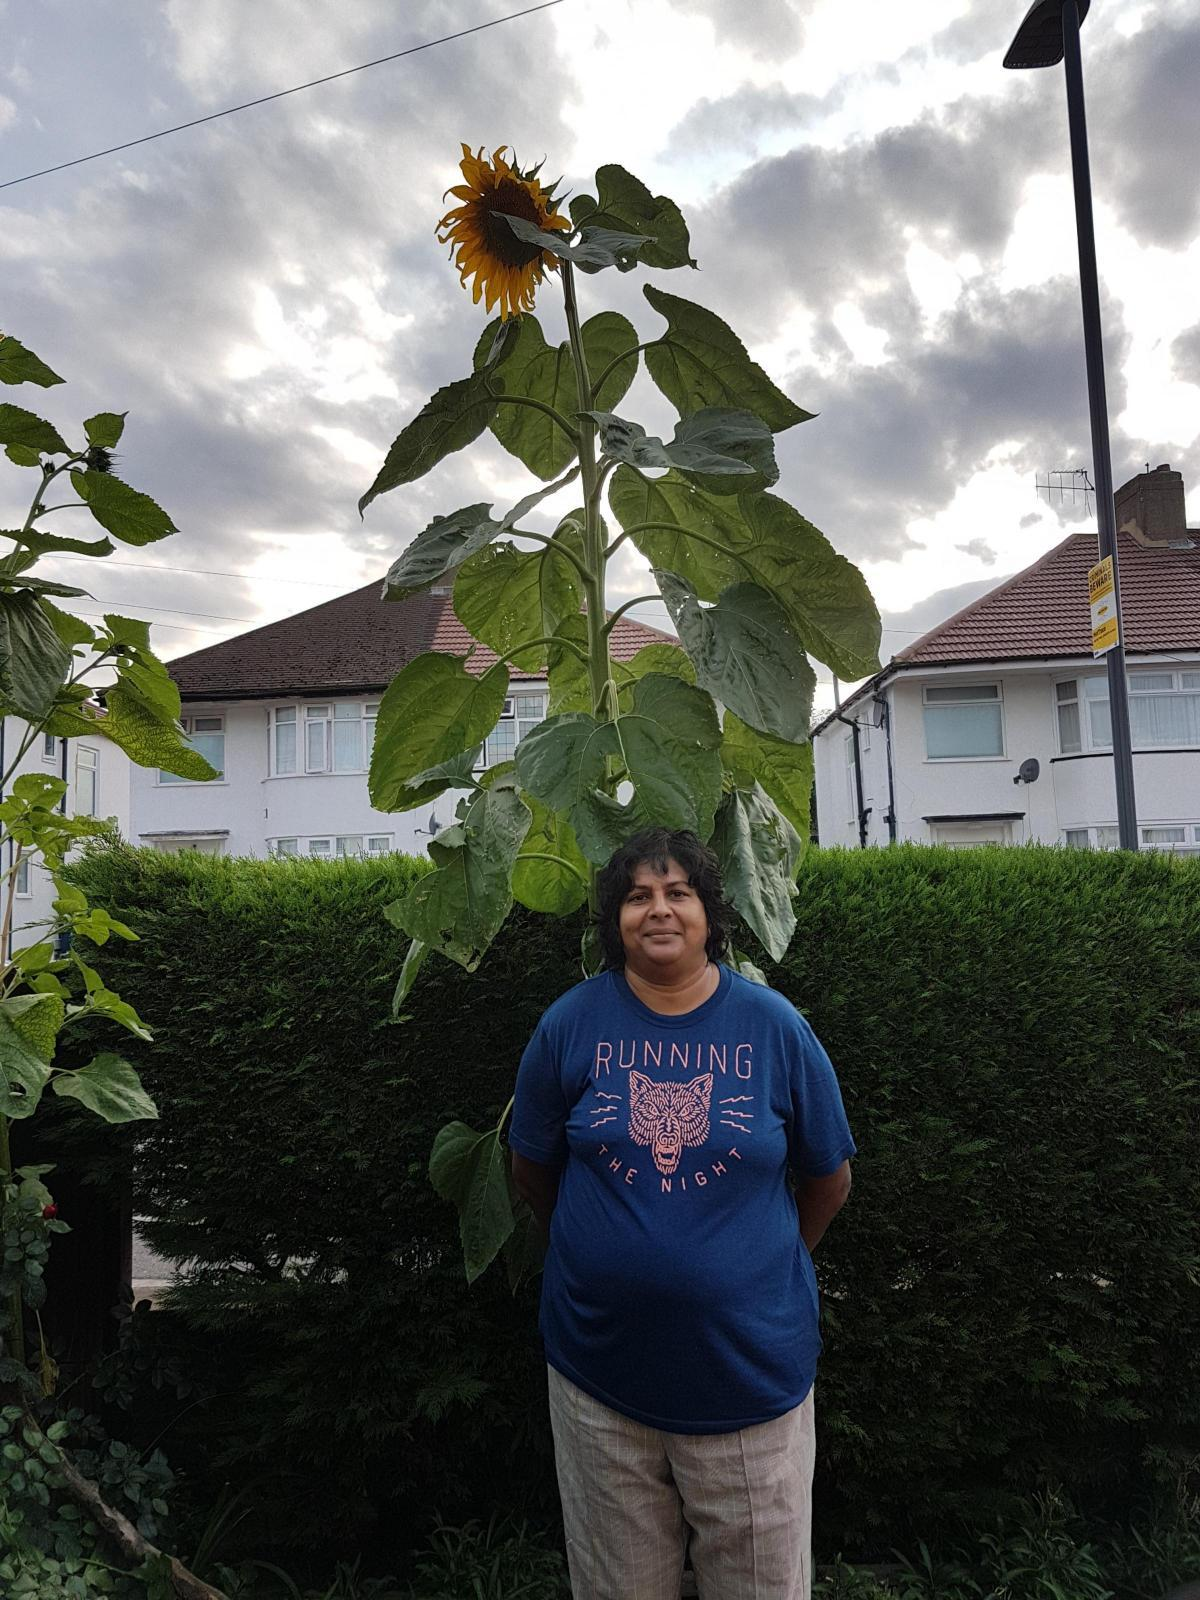 Janith Kamani's giant Mongolian sunflowers in her front garden